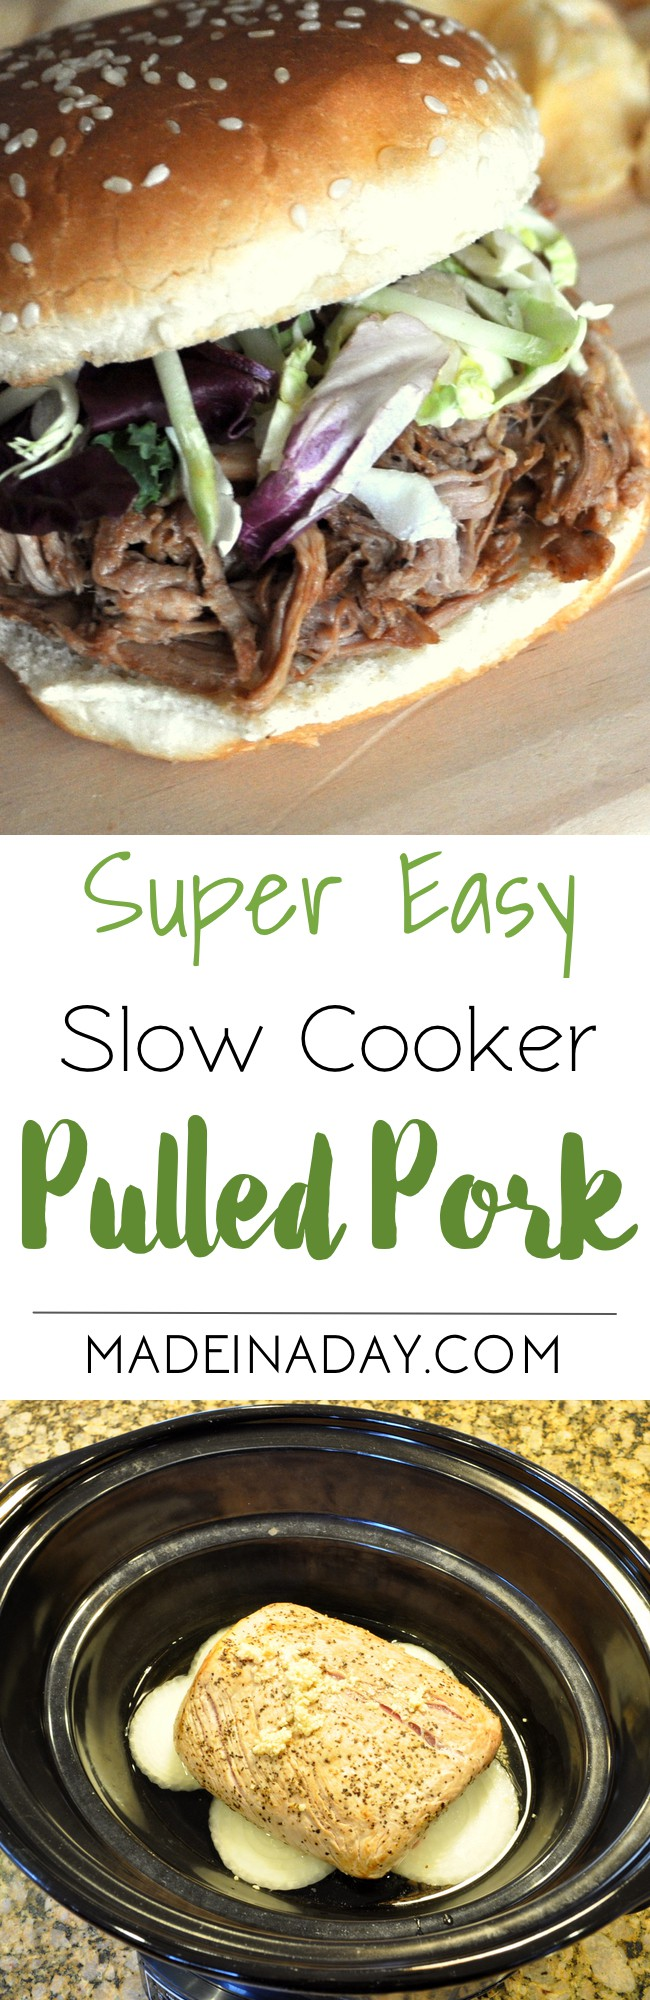 Super Easy & Delicious Slow Cooker Pulled Pork, Crock up a pork roast, shred and add your favorite BBQ sauce for one easy weeknight meal! Recipe on madeinaday.com